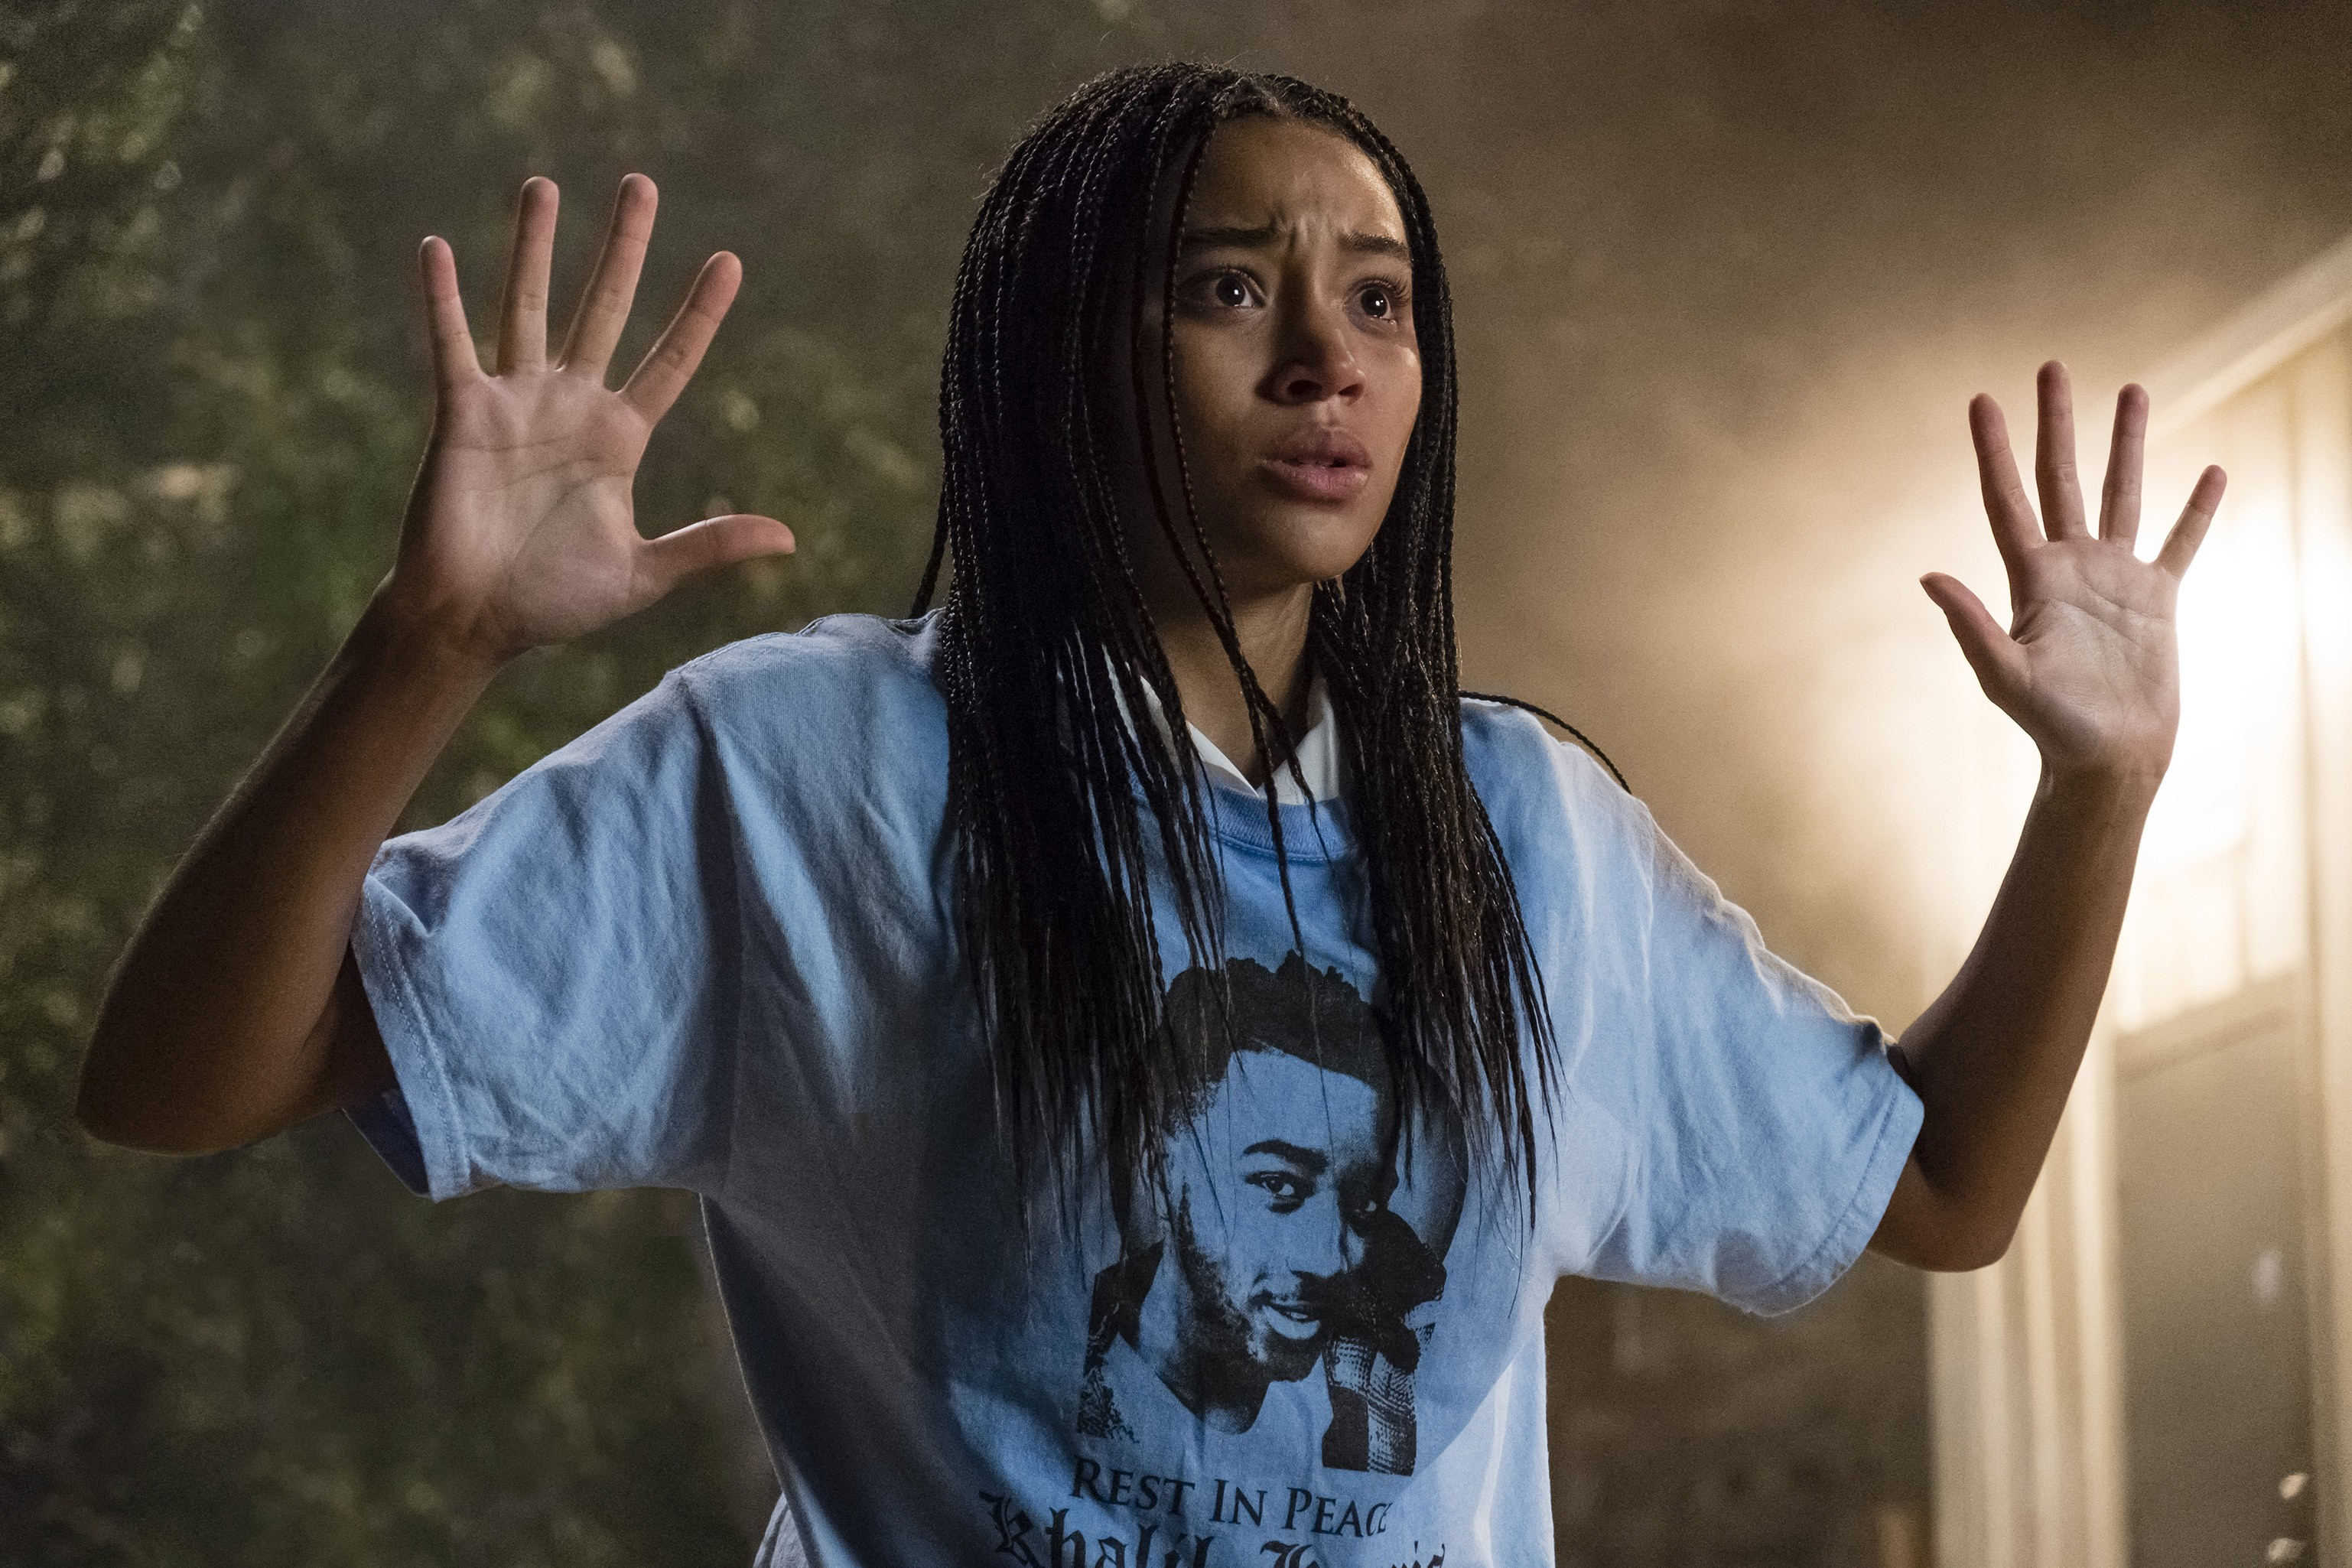 The Hate U Give embodies the exhausting cycle of police brutality